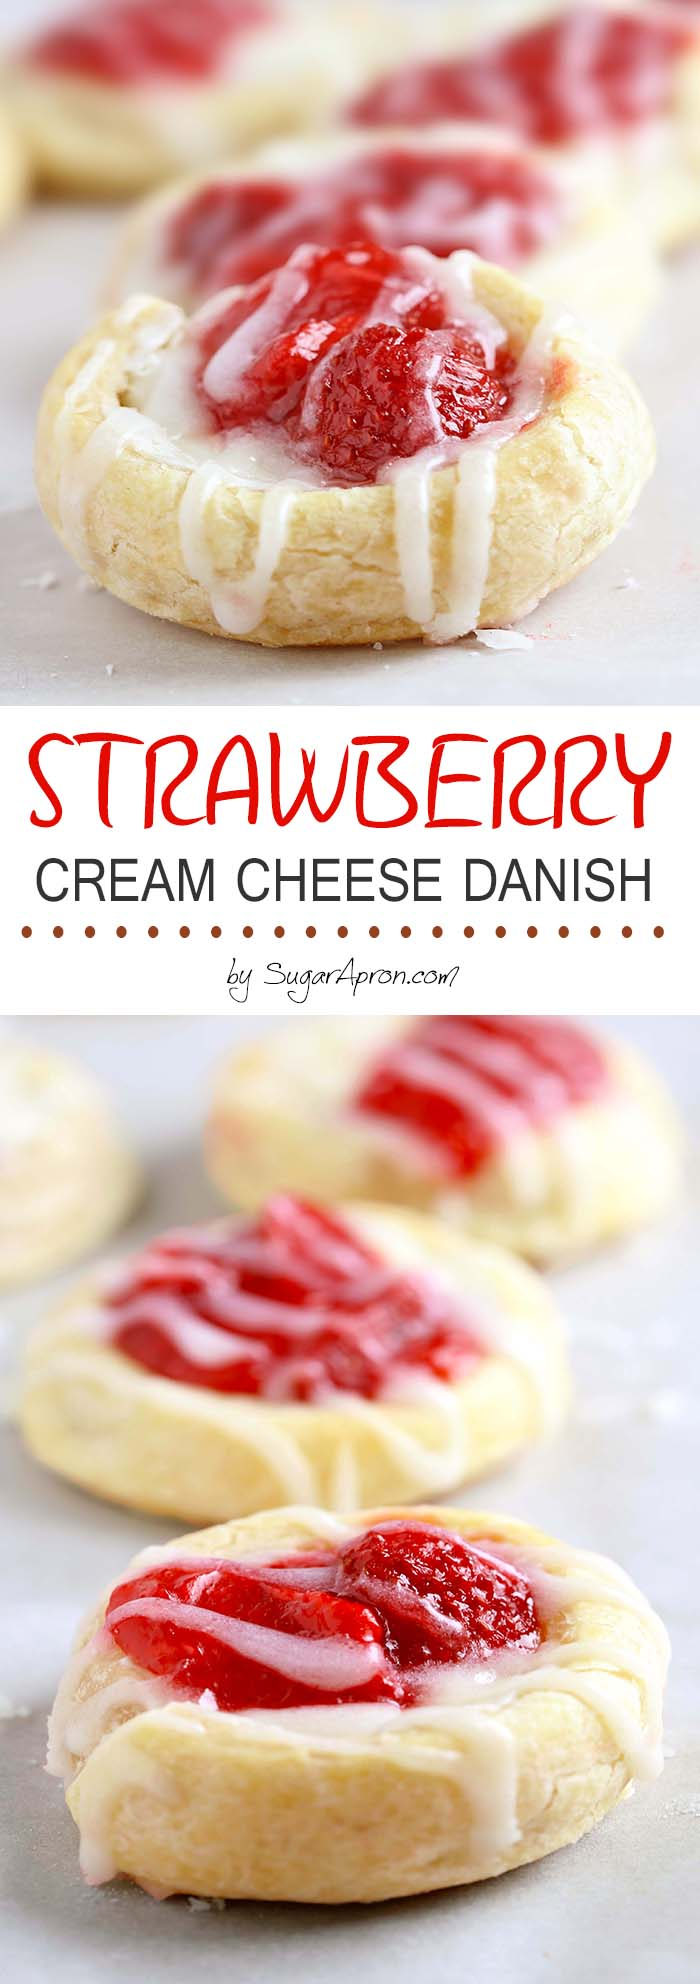 Who can resist flaky crescent rolls combined with a sweet cream cheese and strawberry filling? These strawberry cream cheese danish are so addictive!